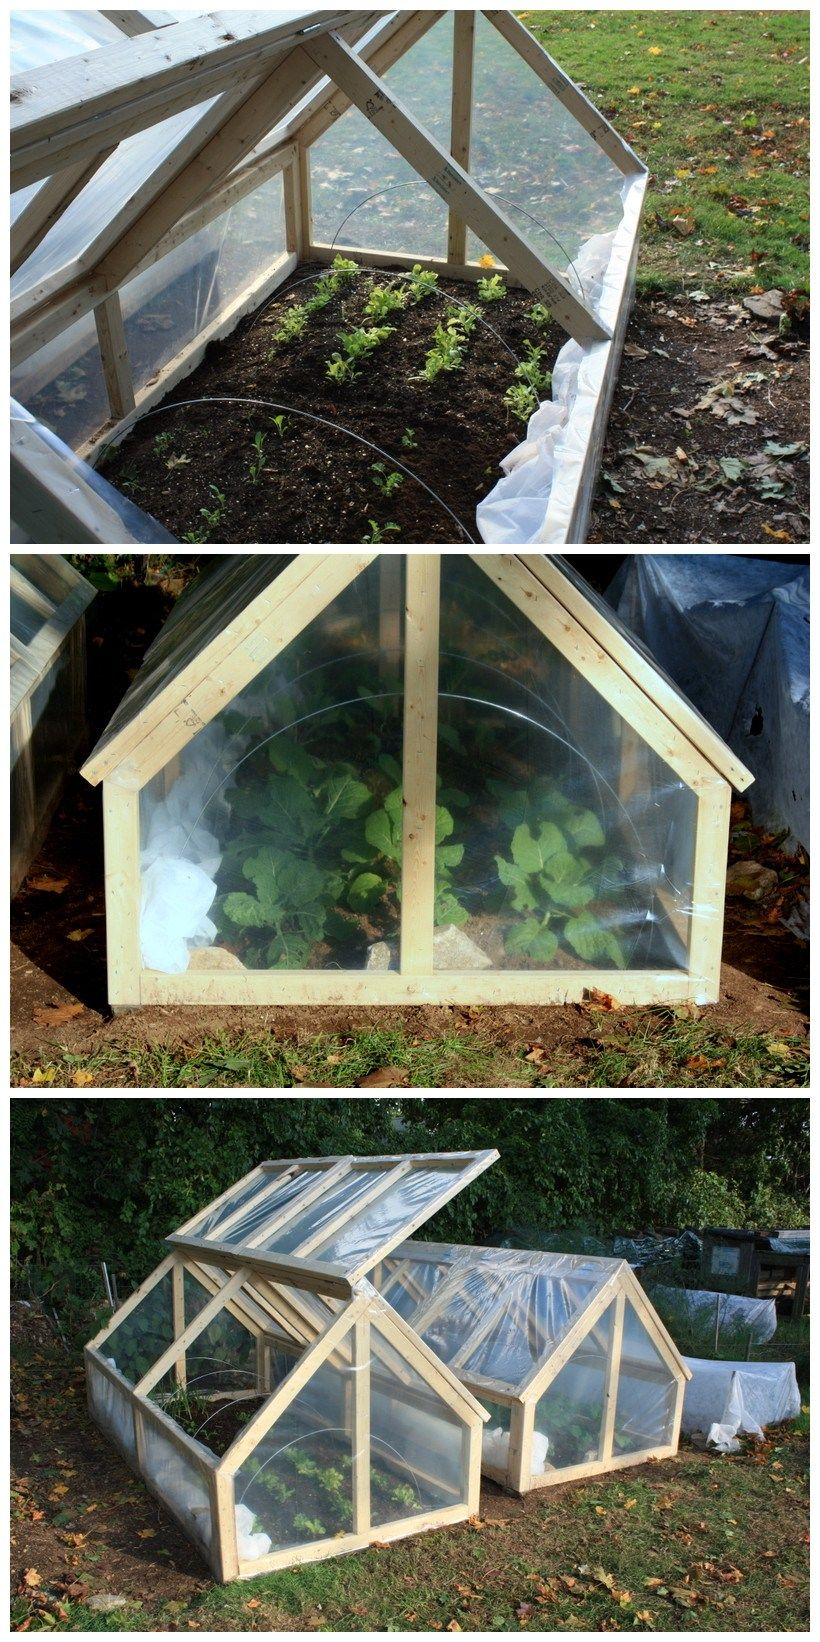 16 Awesome Diy Greenhouse Projects With Tutorials